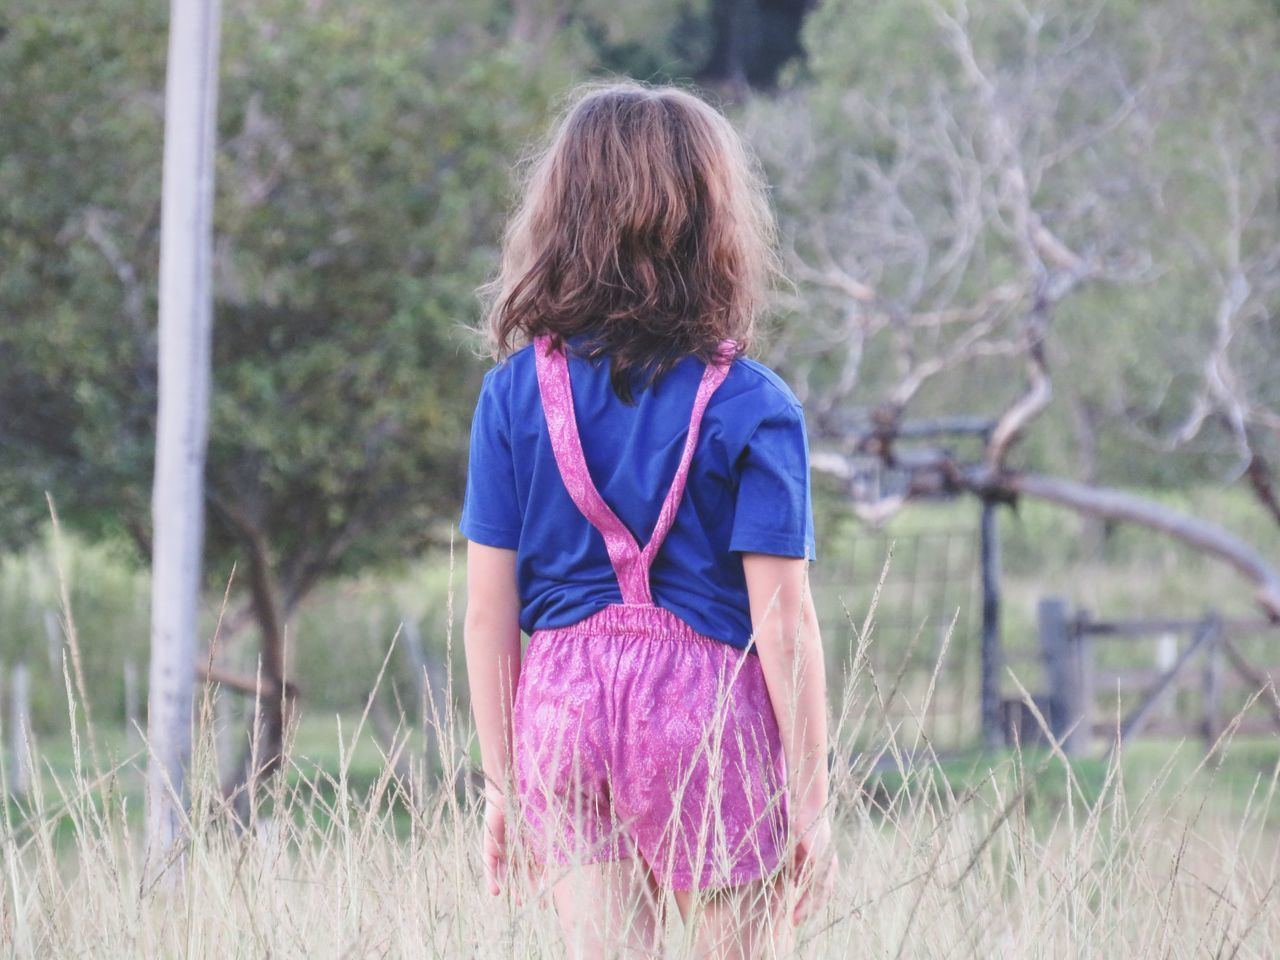 REAR VIEW OF GIRL LOOKING AT GRASS